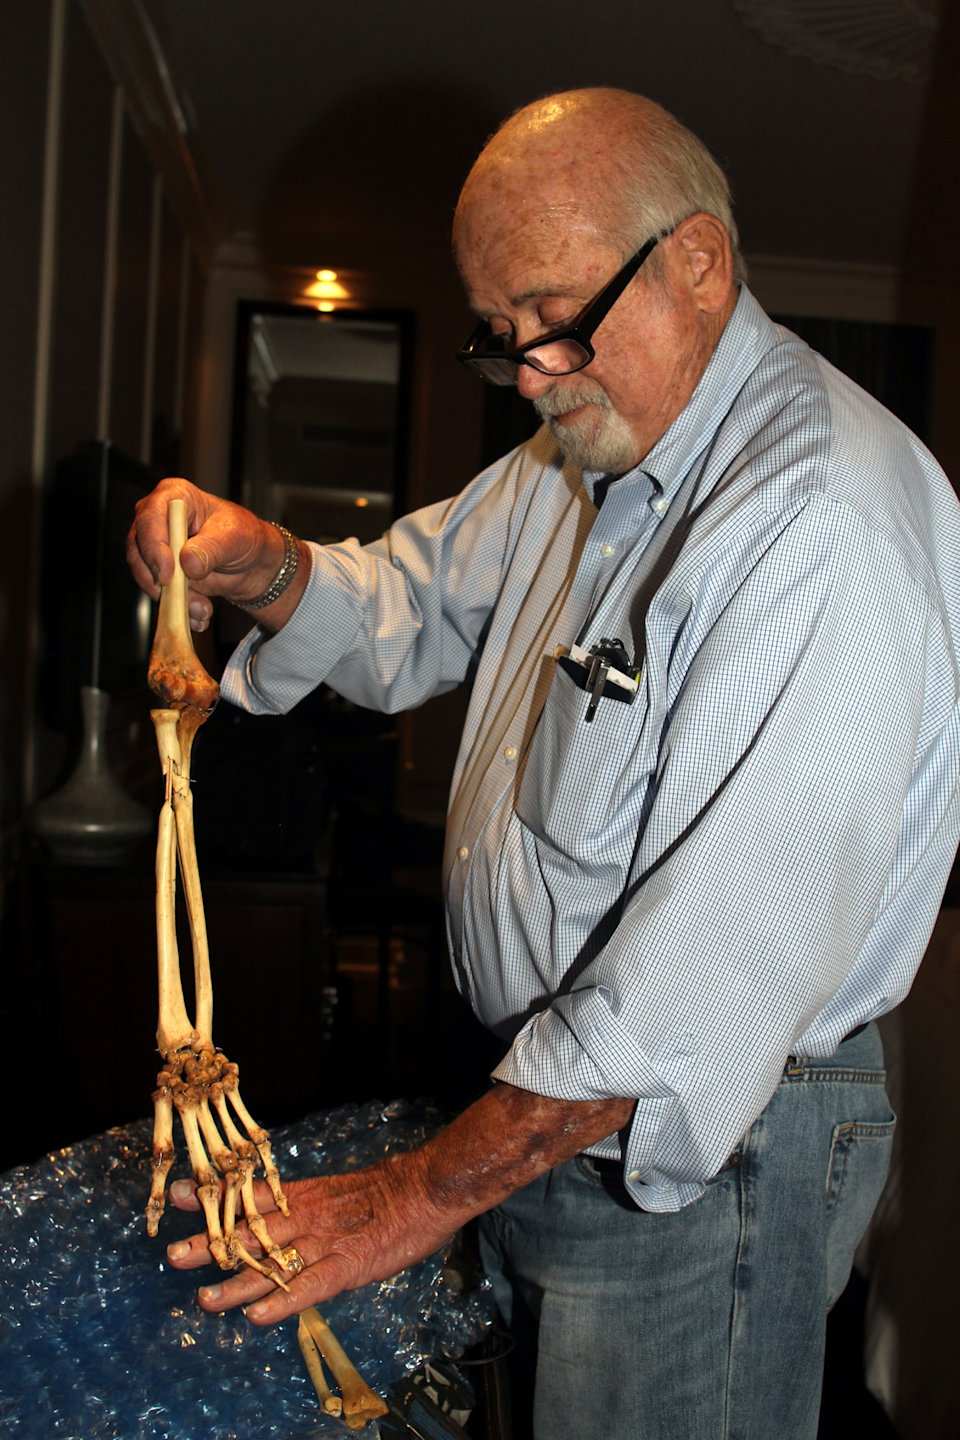 In this photo taken Sunday, June 30, 2013, Dr. Sam Axelrad displays in a hotel room in Hanoi the bones of an arm he amputated in 1966 in the former South Vietnam. On Monday the Houston urologist was traveling to meet the amputee, Nguyen Quang Hung. Axelrad, 74, amputated Hung's infected arm in October 1966 in a U.S. military hospital after Hung was shot by American troops near Hung's hometown of An Khe. The two veterans were reunited after a Vietnamese journalist wrote an article last year about Axelrad's search for Hung, prompting Hung's brother to contact the newspaper. (AP photo/Mike Ives)